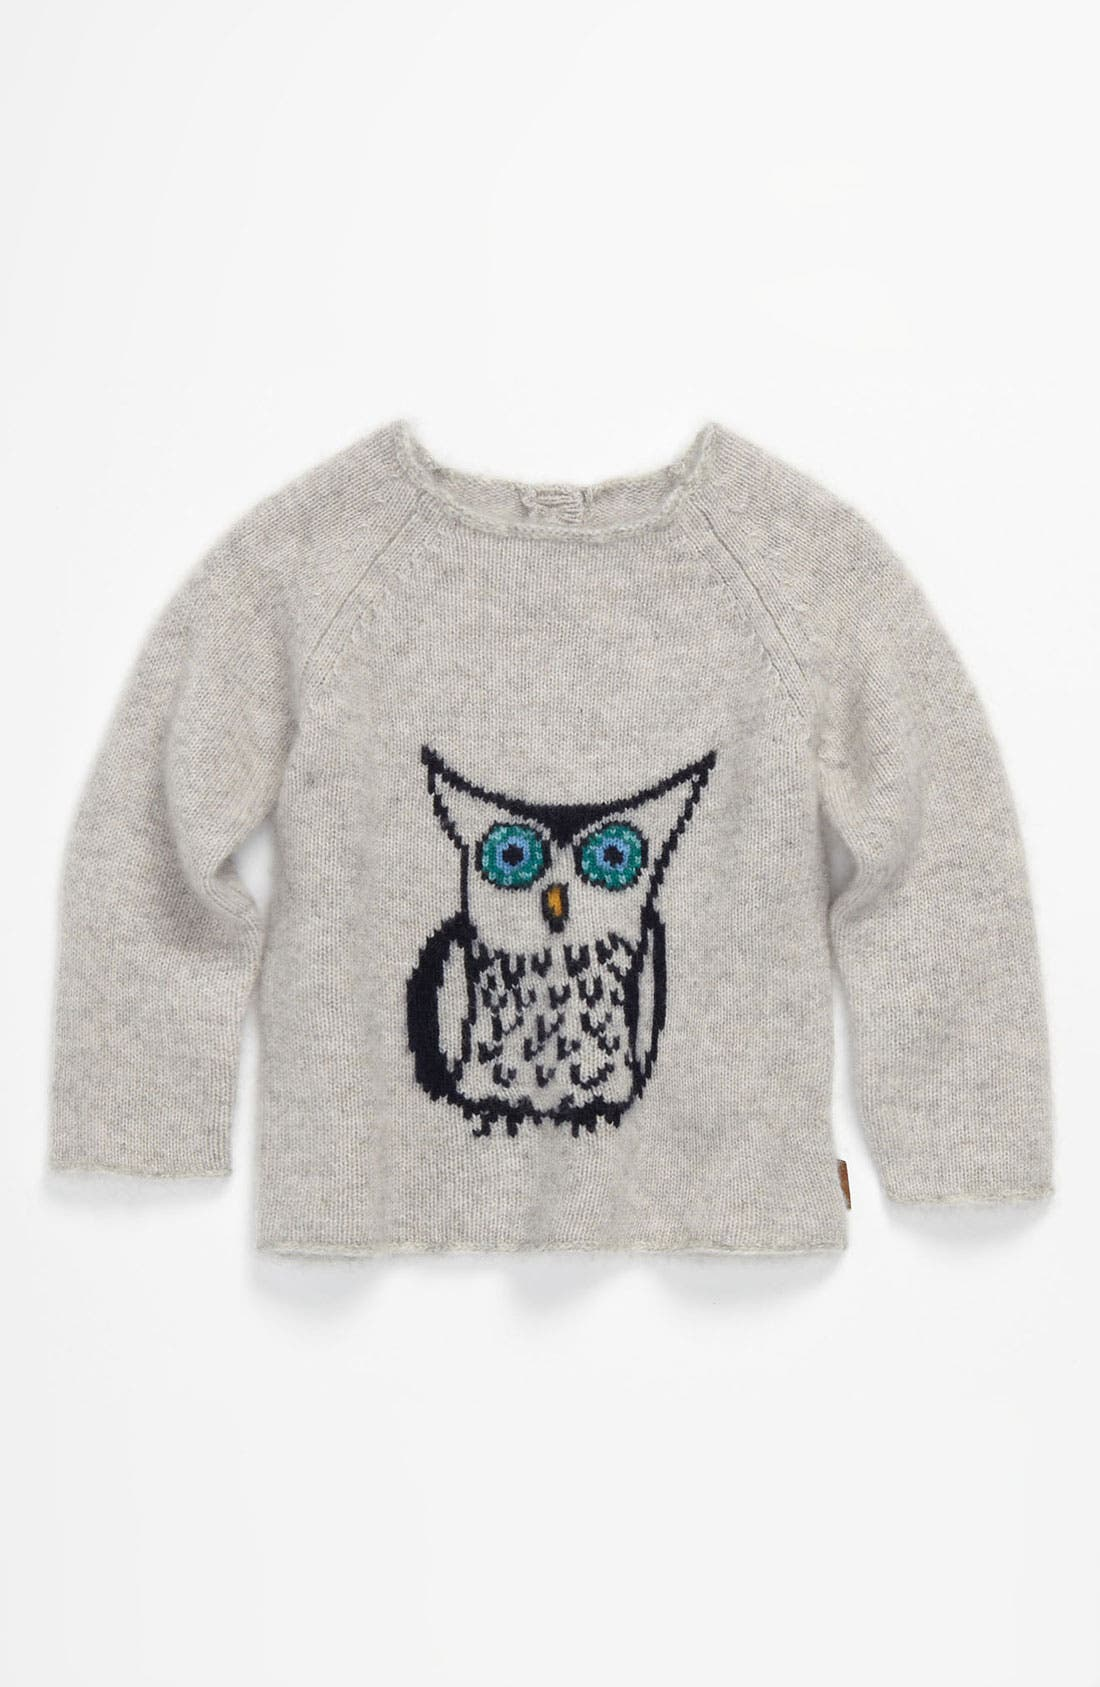 Alternate Image 1 Selected - Burberry Owl Intarsia Cashmere Sweater (Infant)